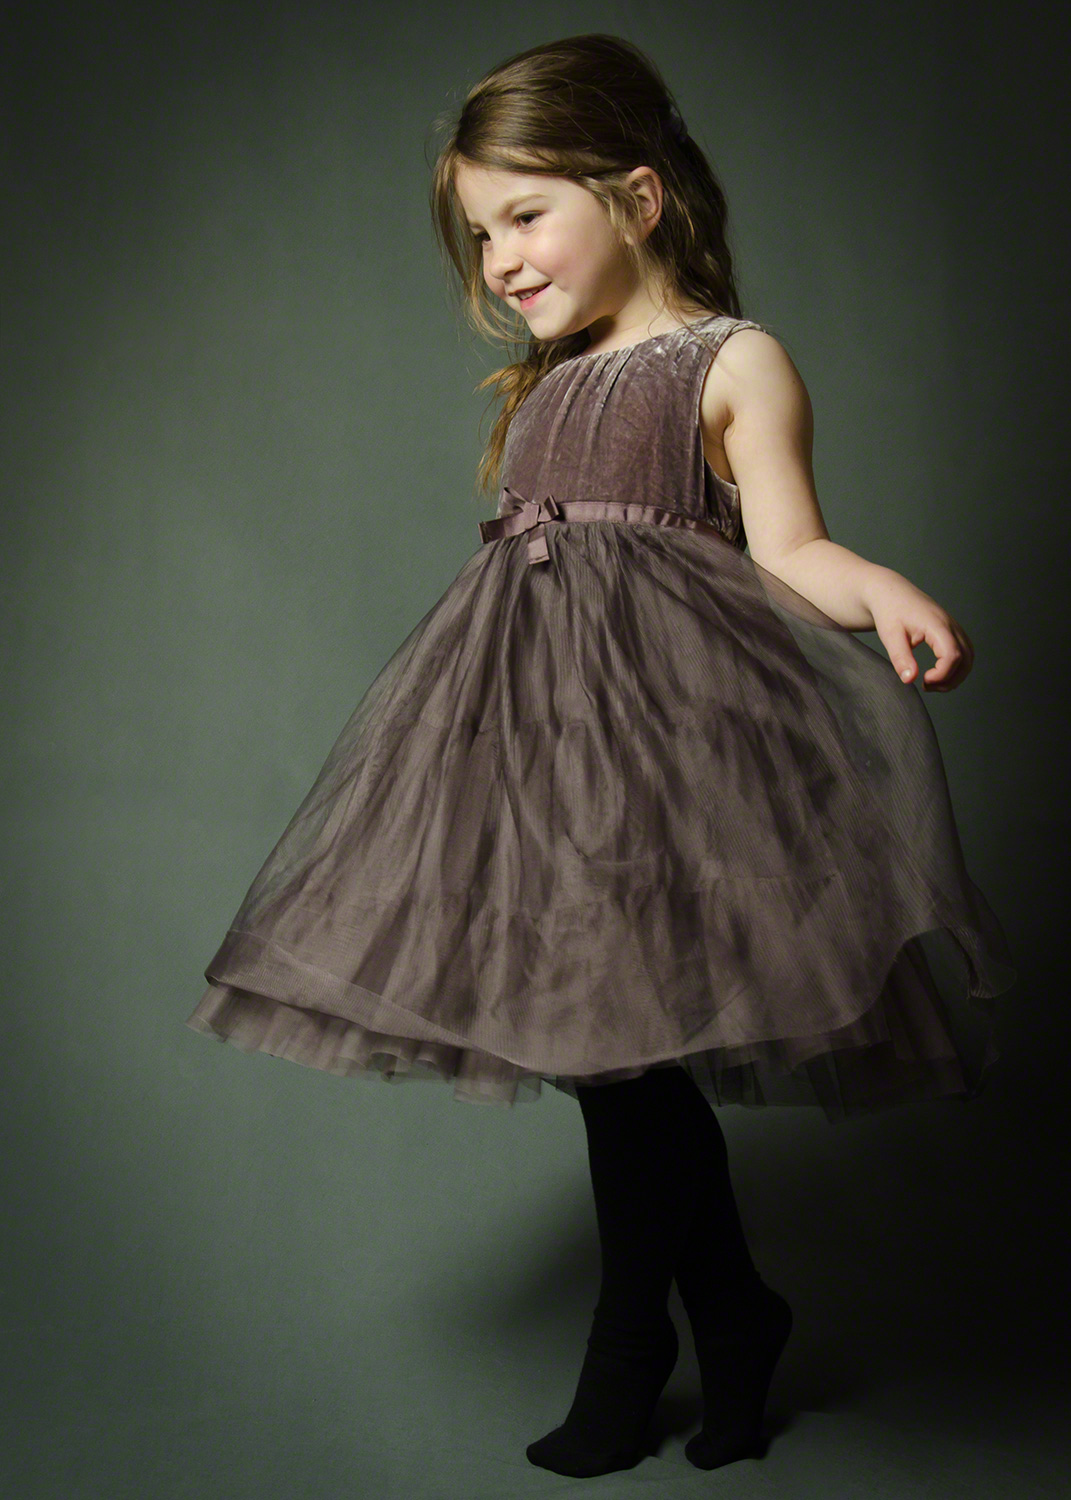 Little girl in party dress